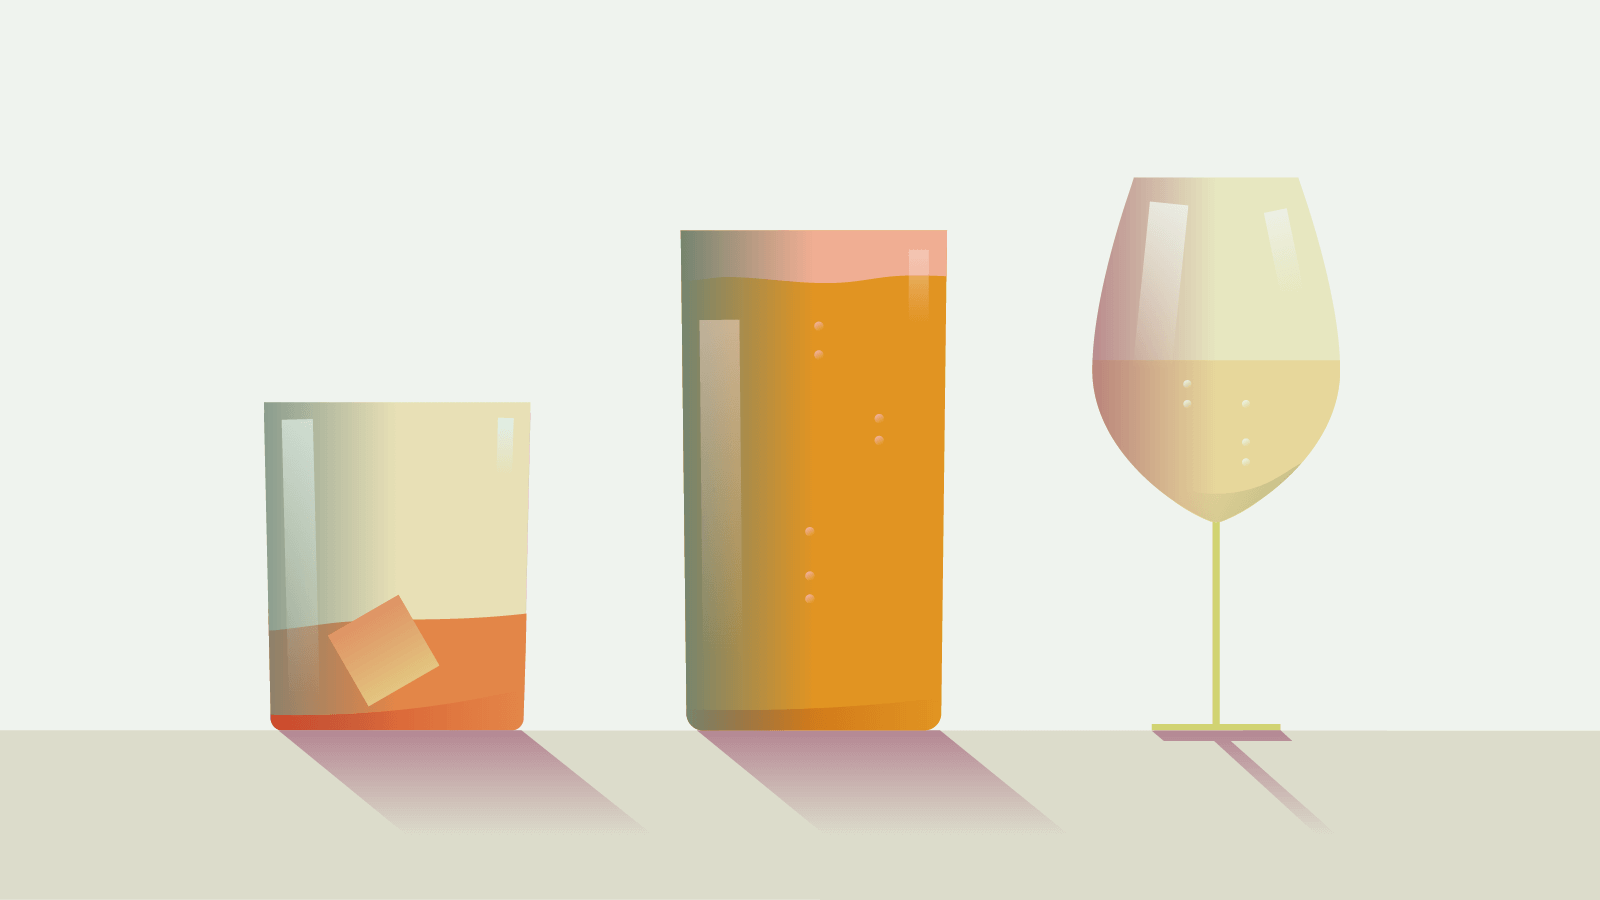 Illustration of a whisky glass, pint glass and wine glass